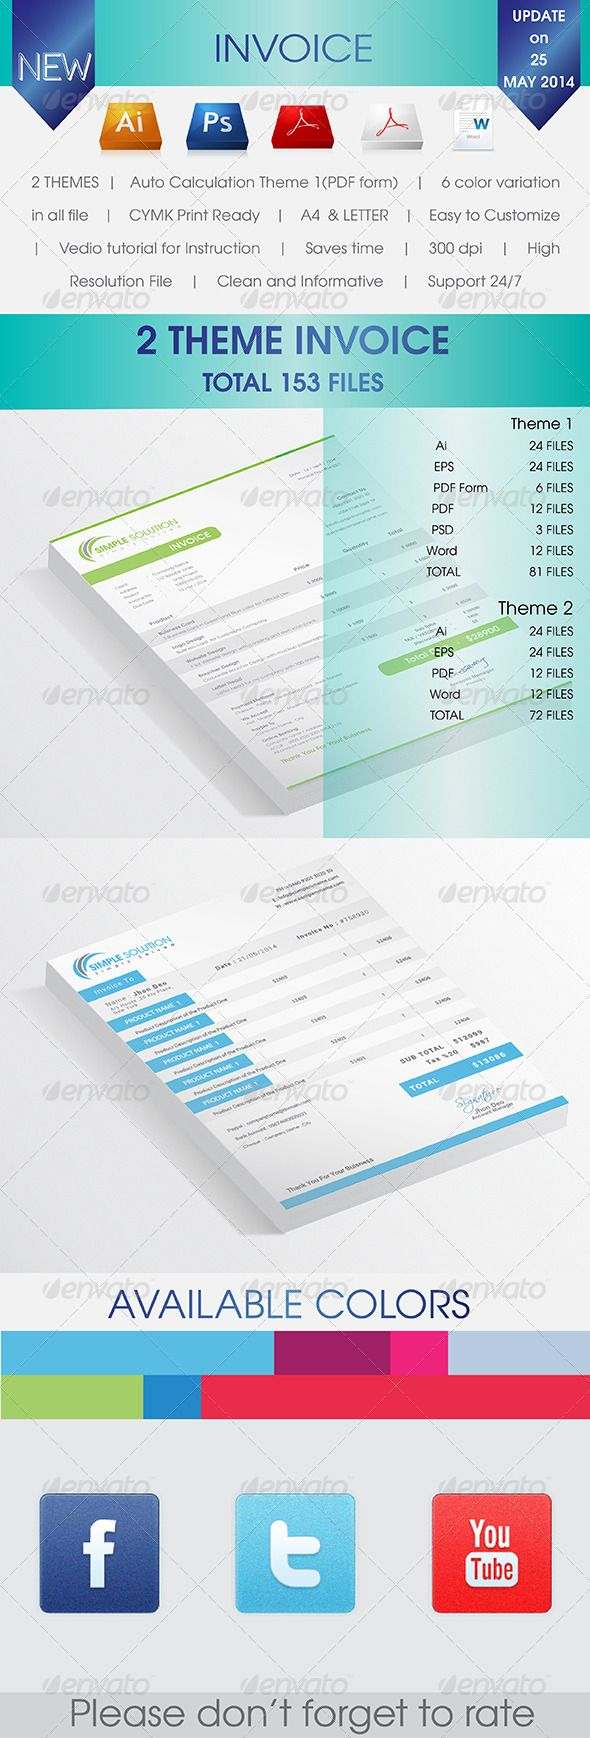 Print Templates 2 Invoices Graphicriver Invoice Template Business Template Templates